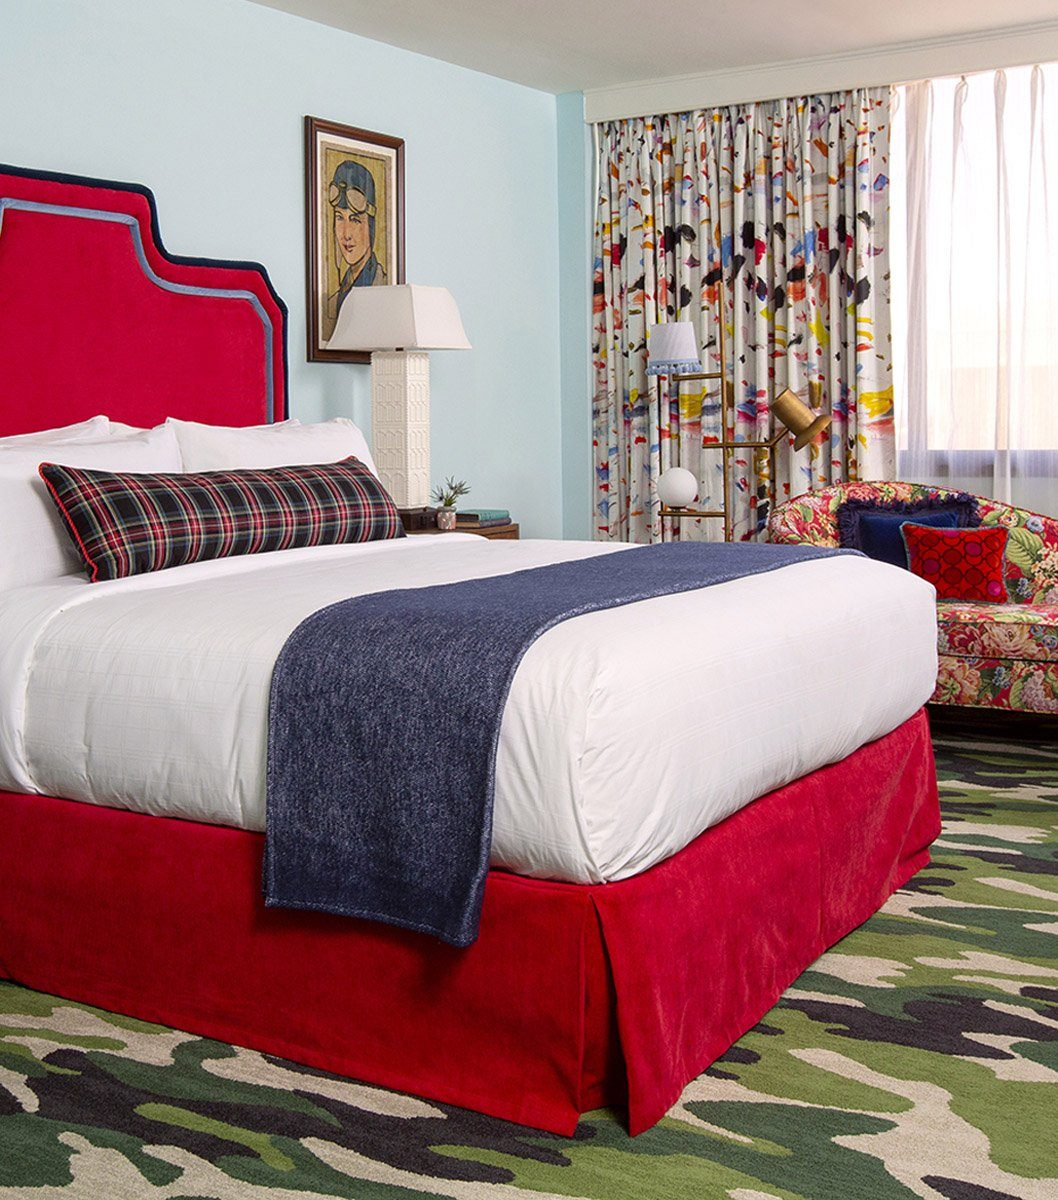 Guestroom at Graduate Fayetteville, featuring a red headboard and camo carpet.